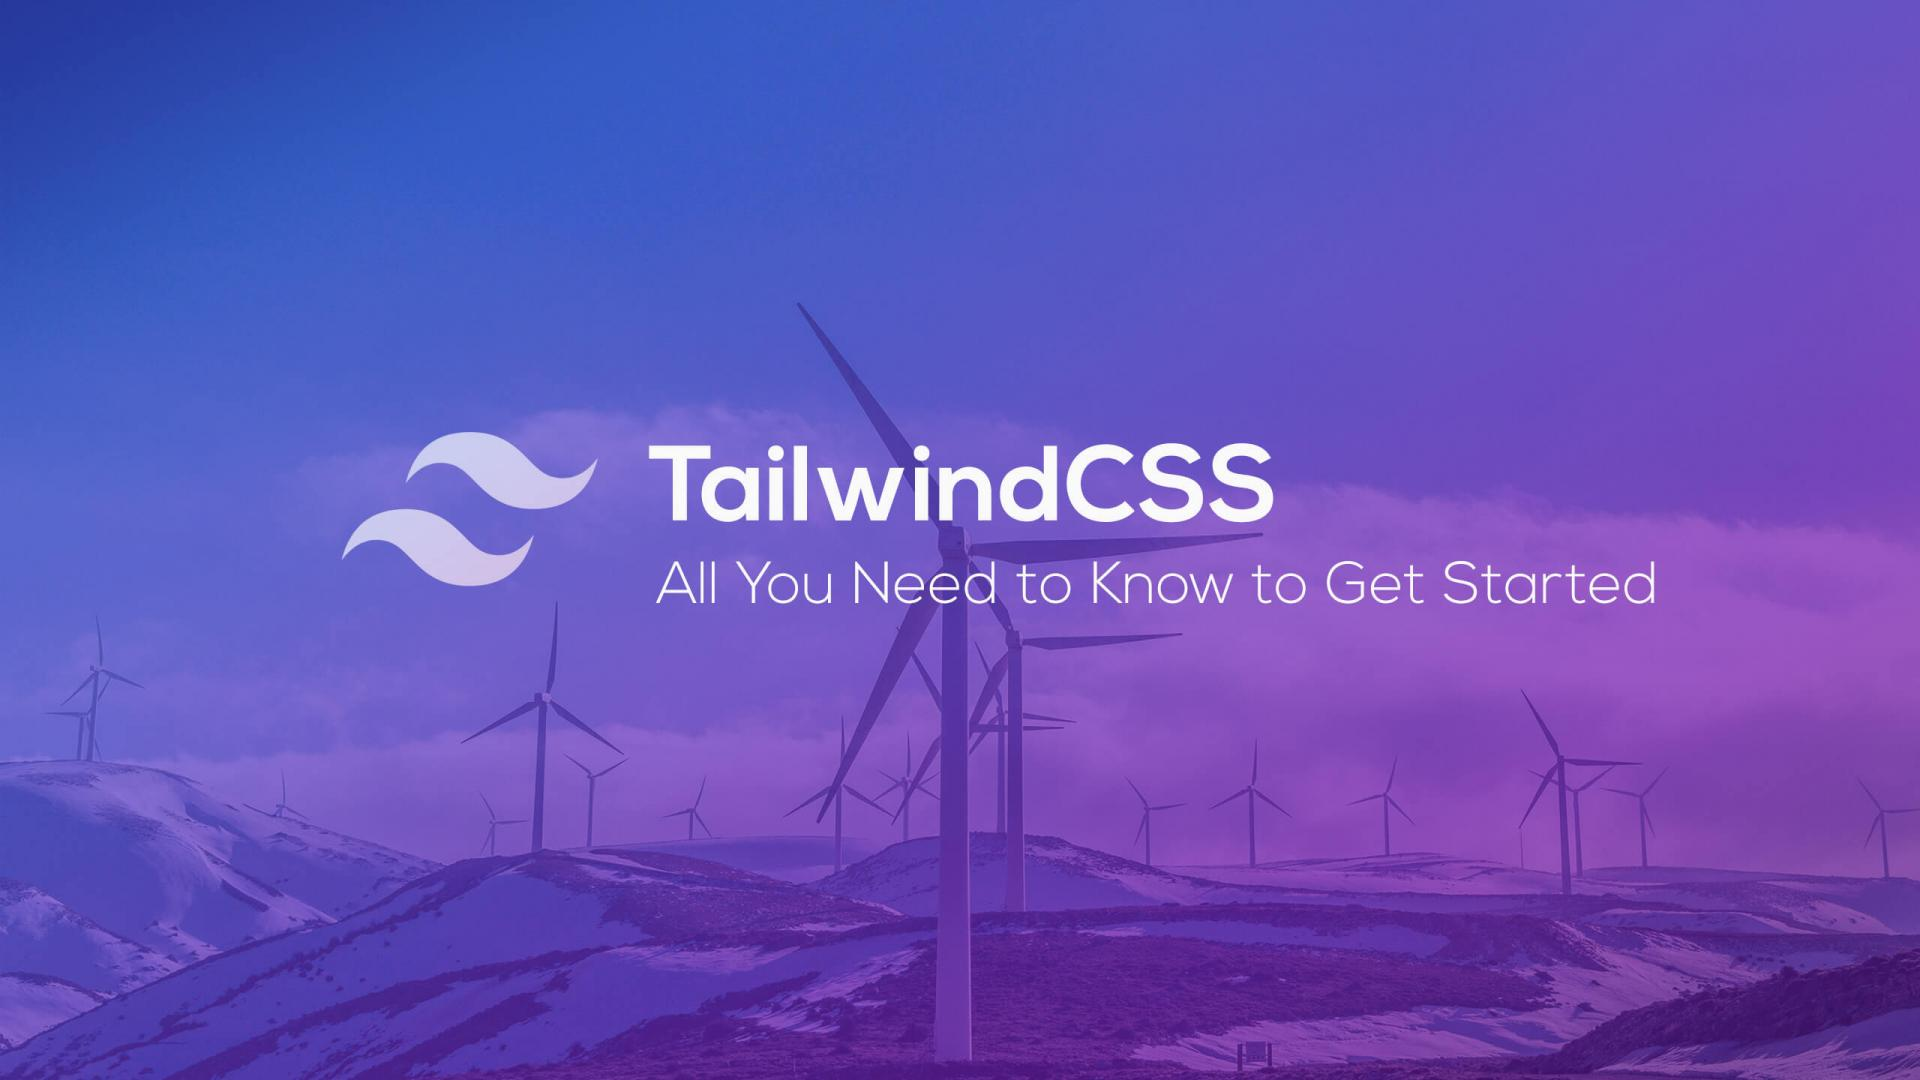 Tailwind CSS - all you need to know to get started